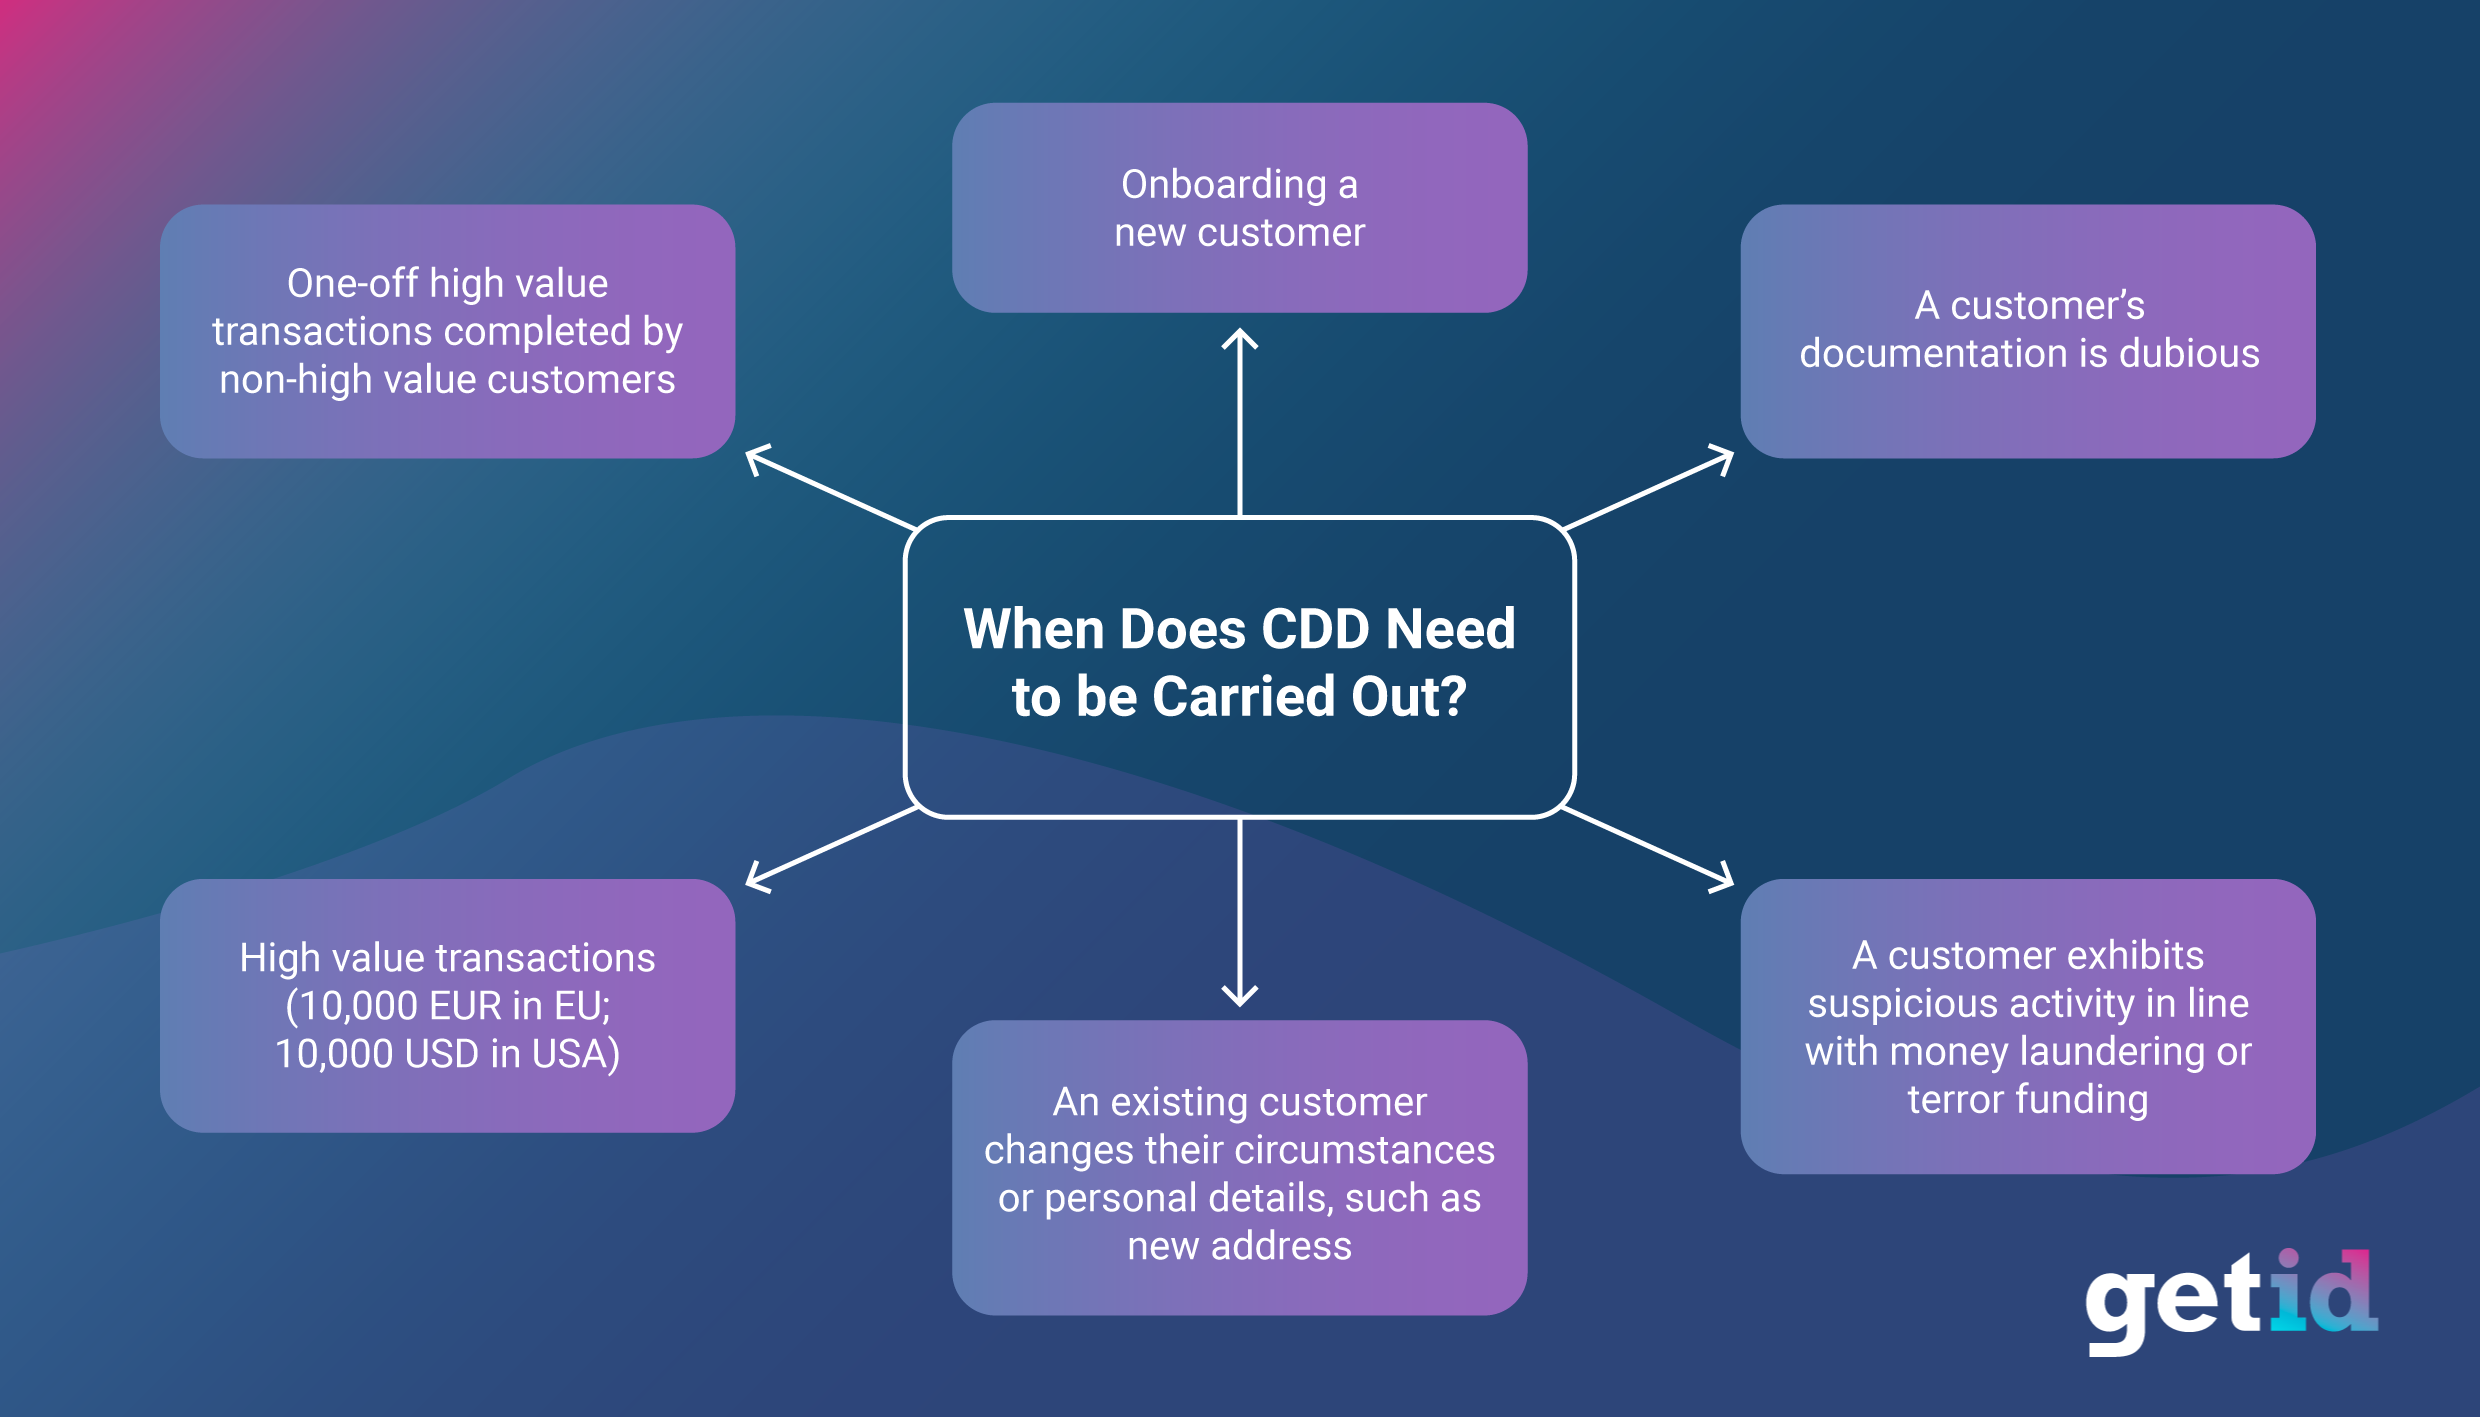 When does CDD need to be carried out?